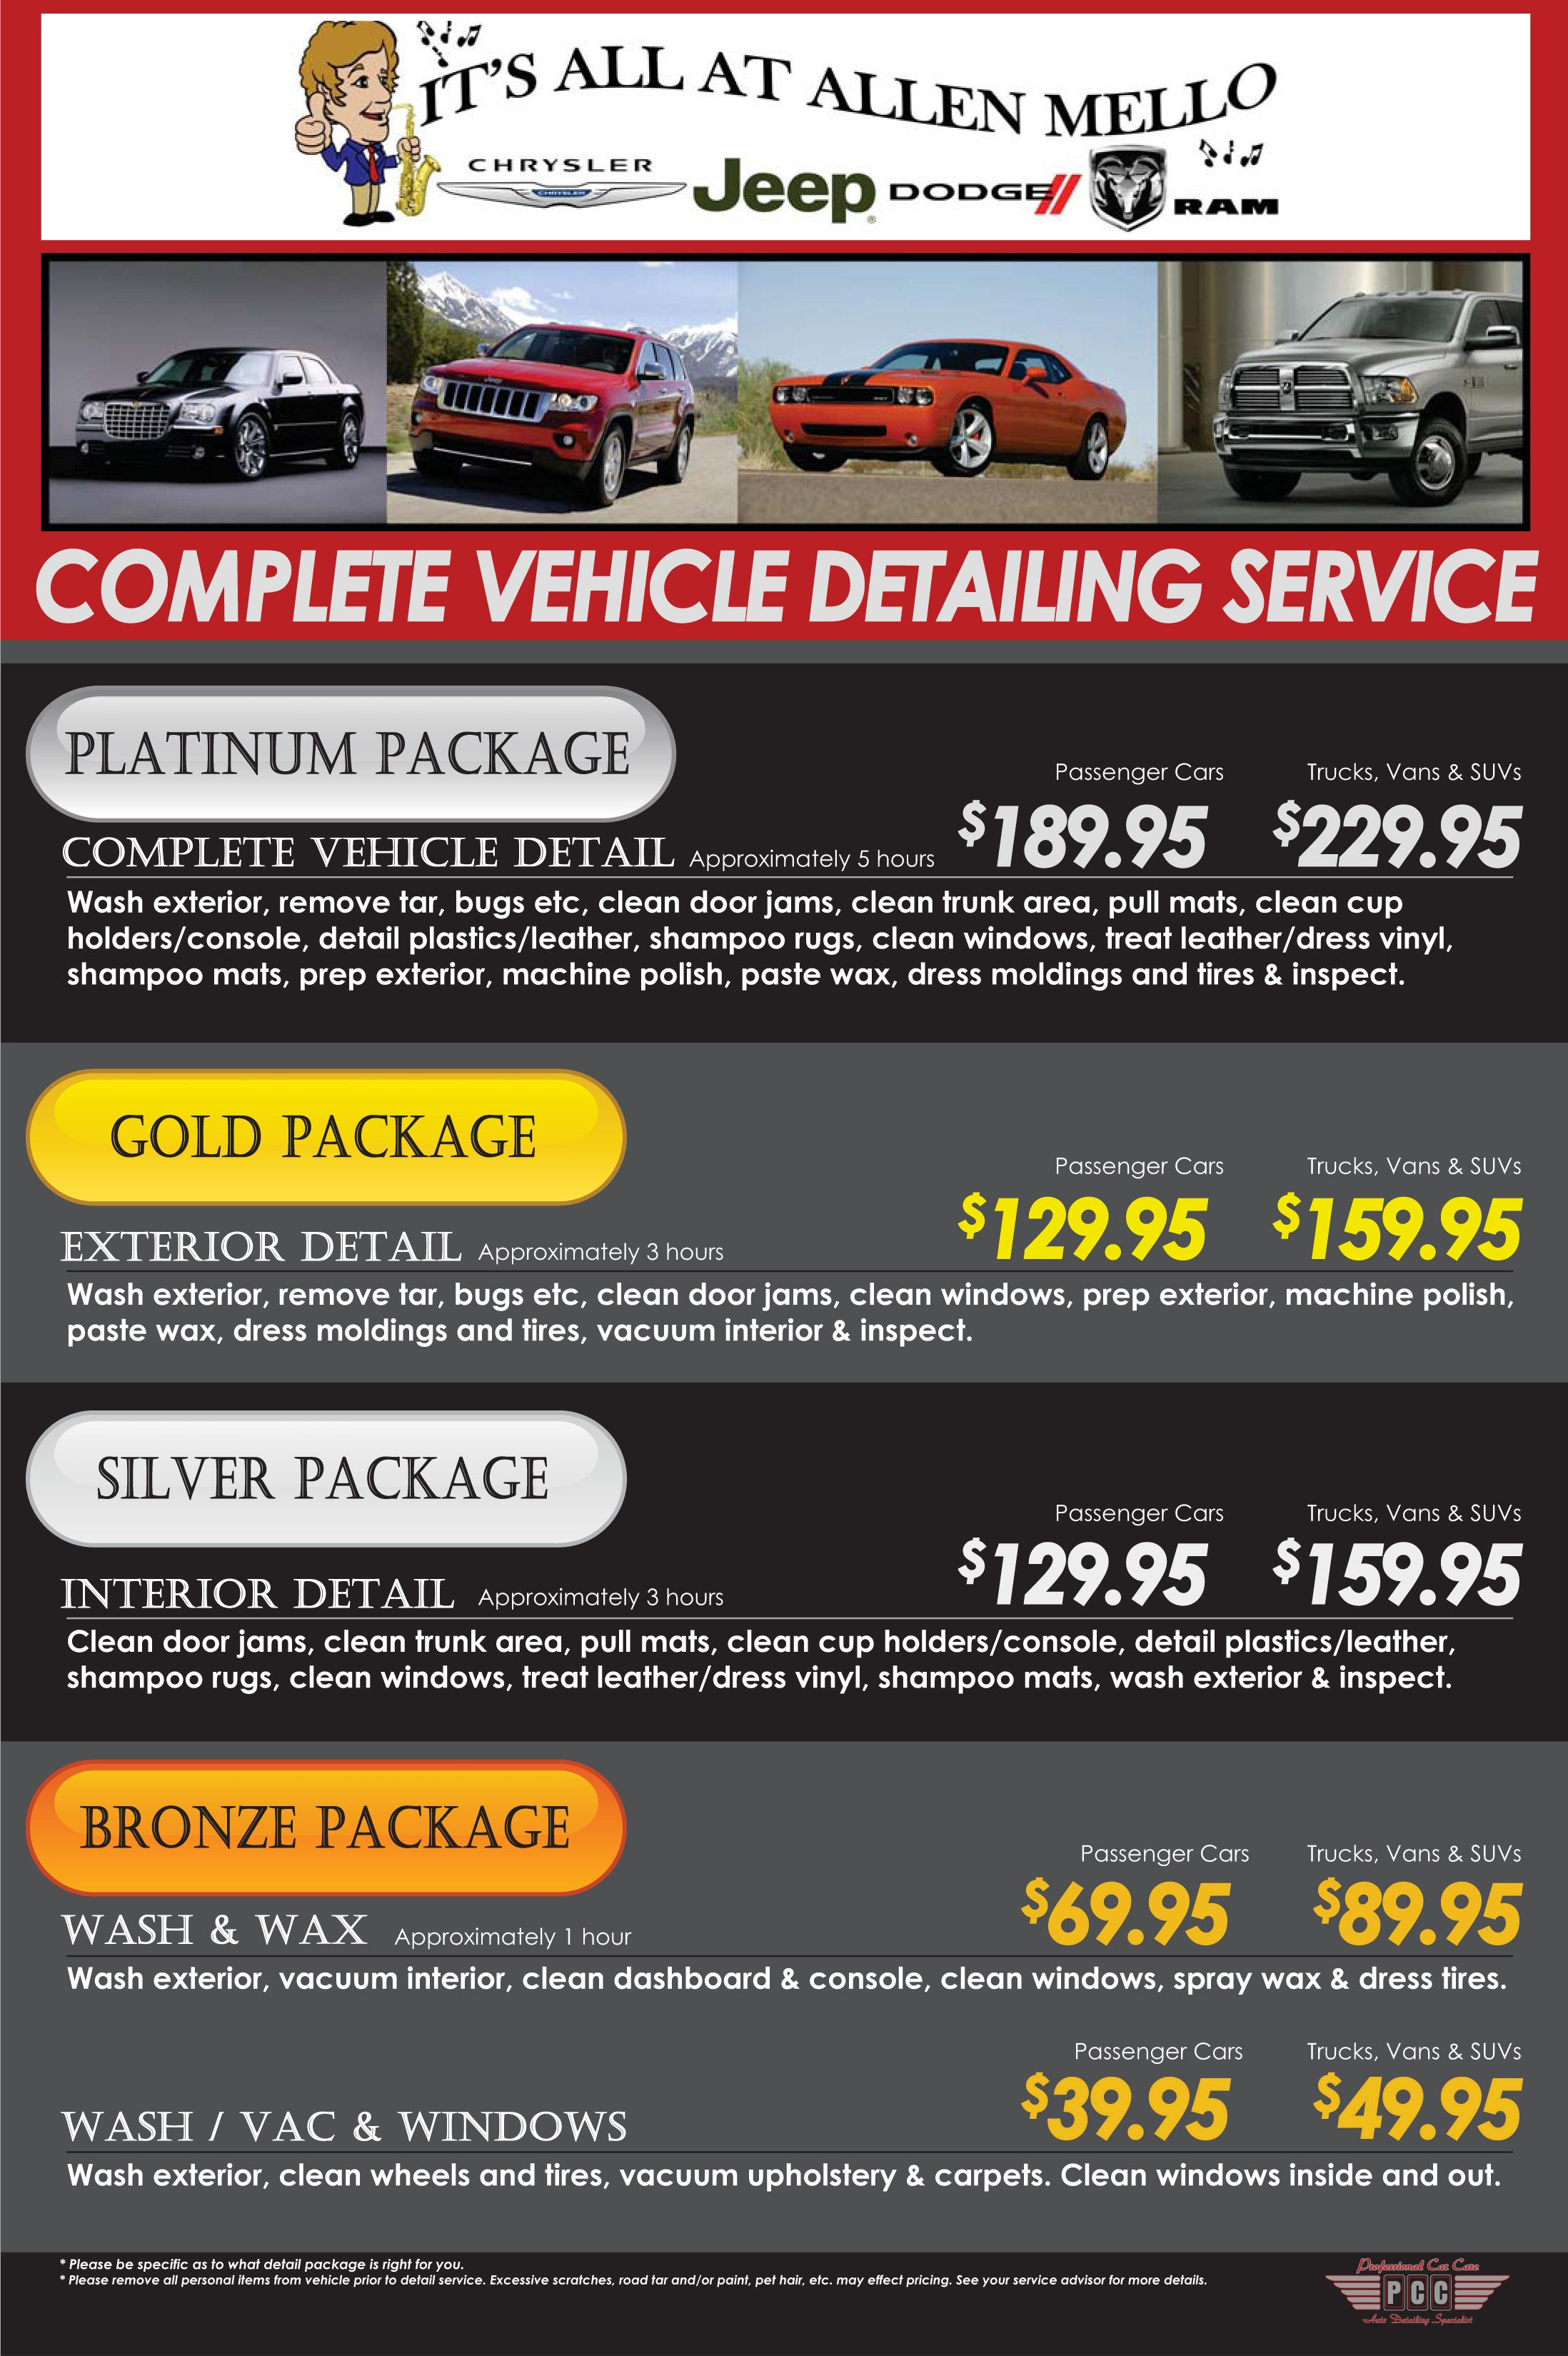 Vehicle detailing nashua allen mello chrysler jeep dodge - Vehicle interior cleaning service ...